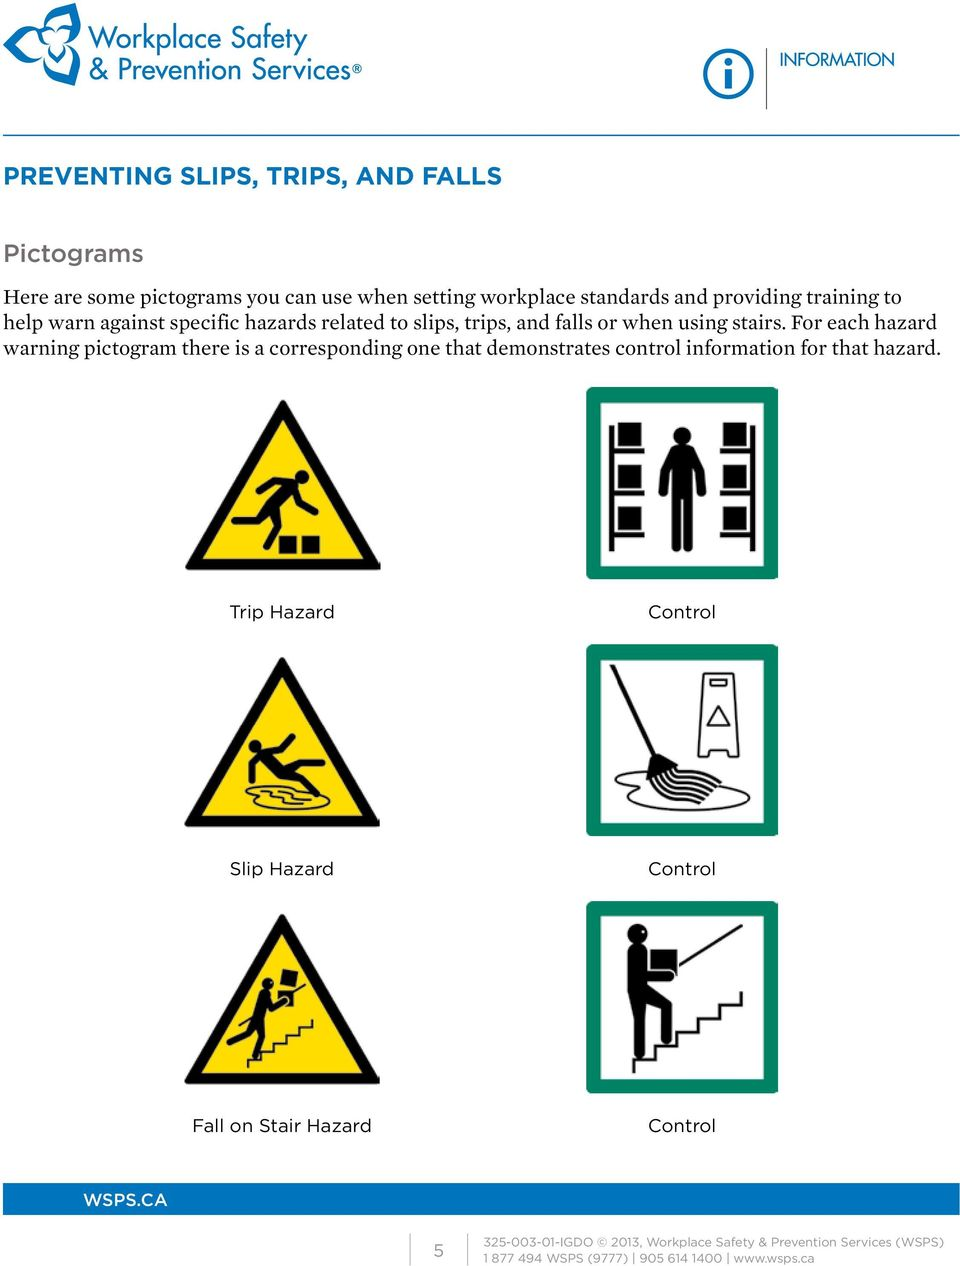 For each hazard warning pictogram there is a corresponding one that demonstrates control information for